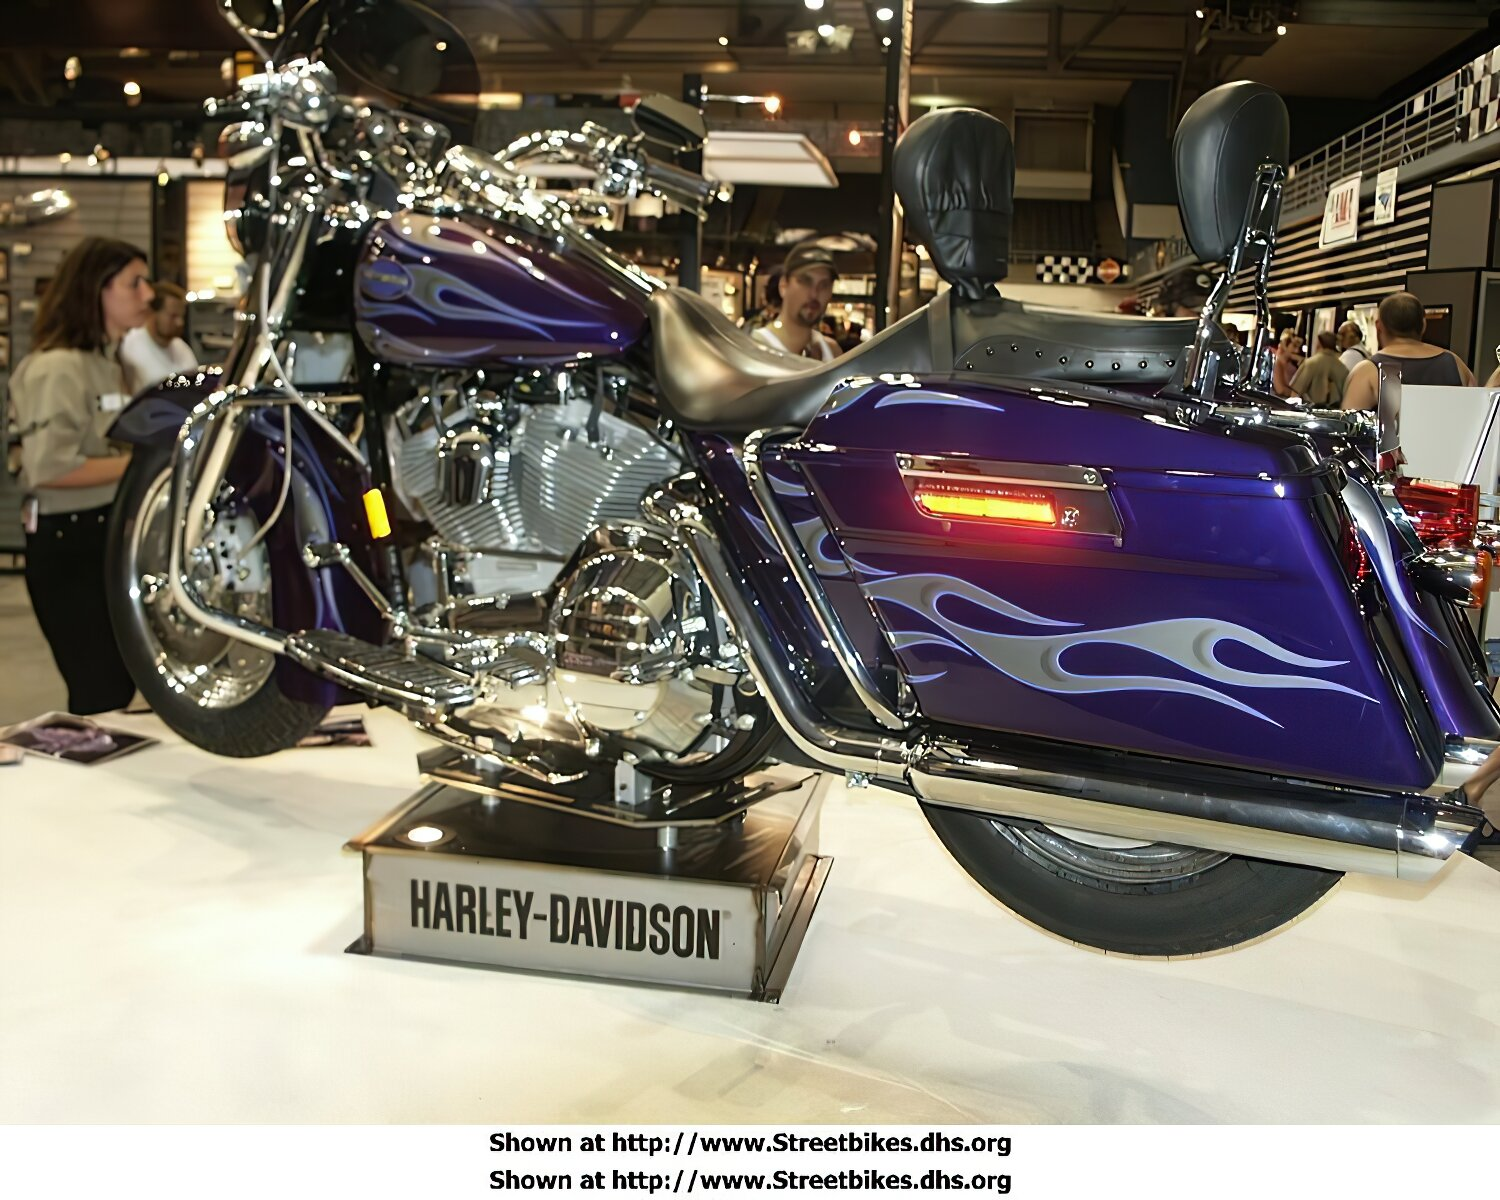 Harley-Davidson Unknown (HD) - ID: 1185